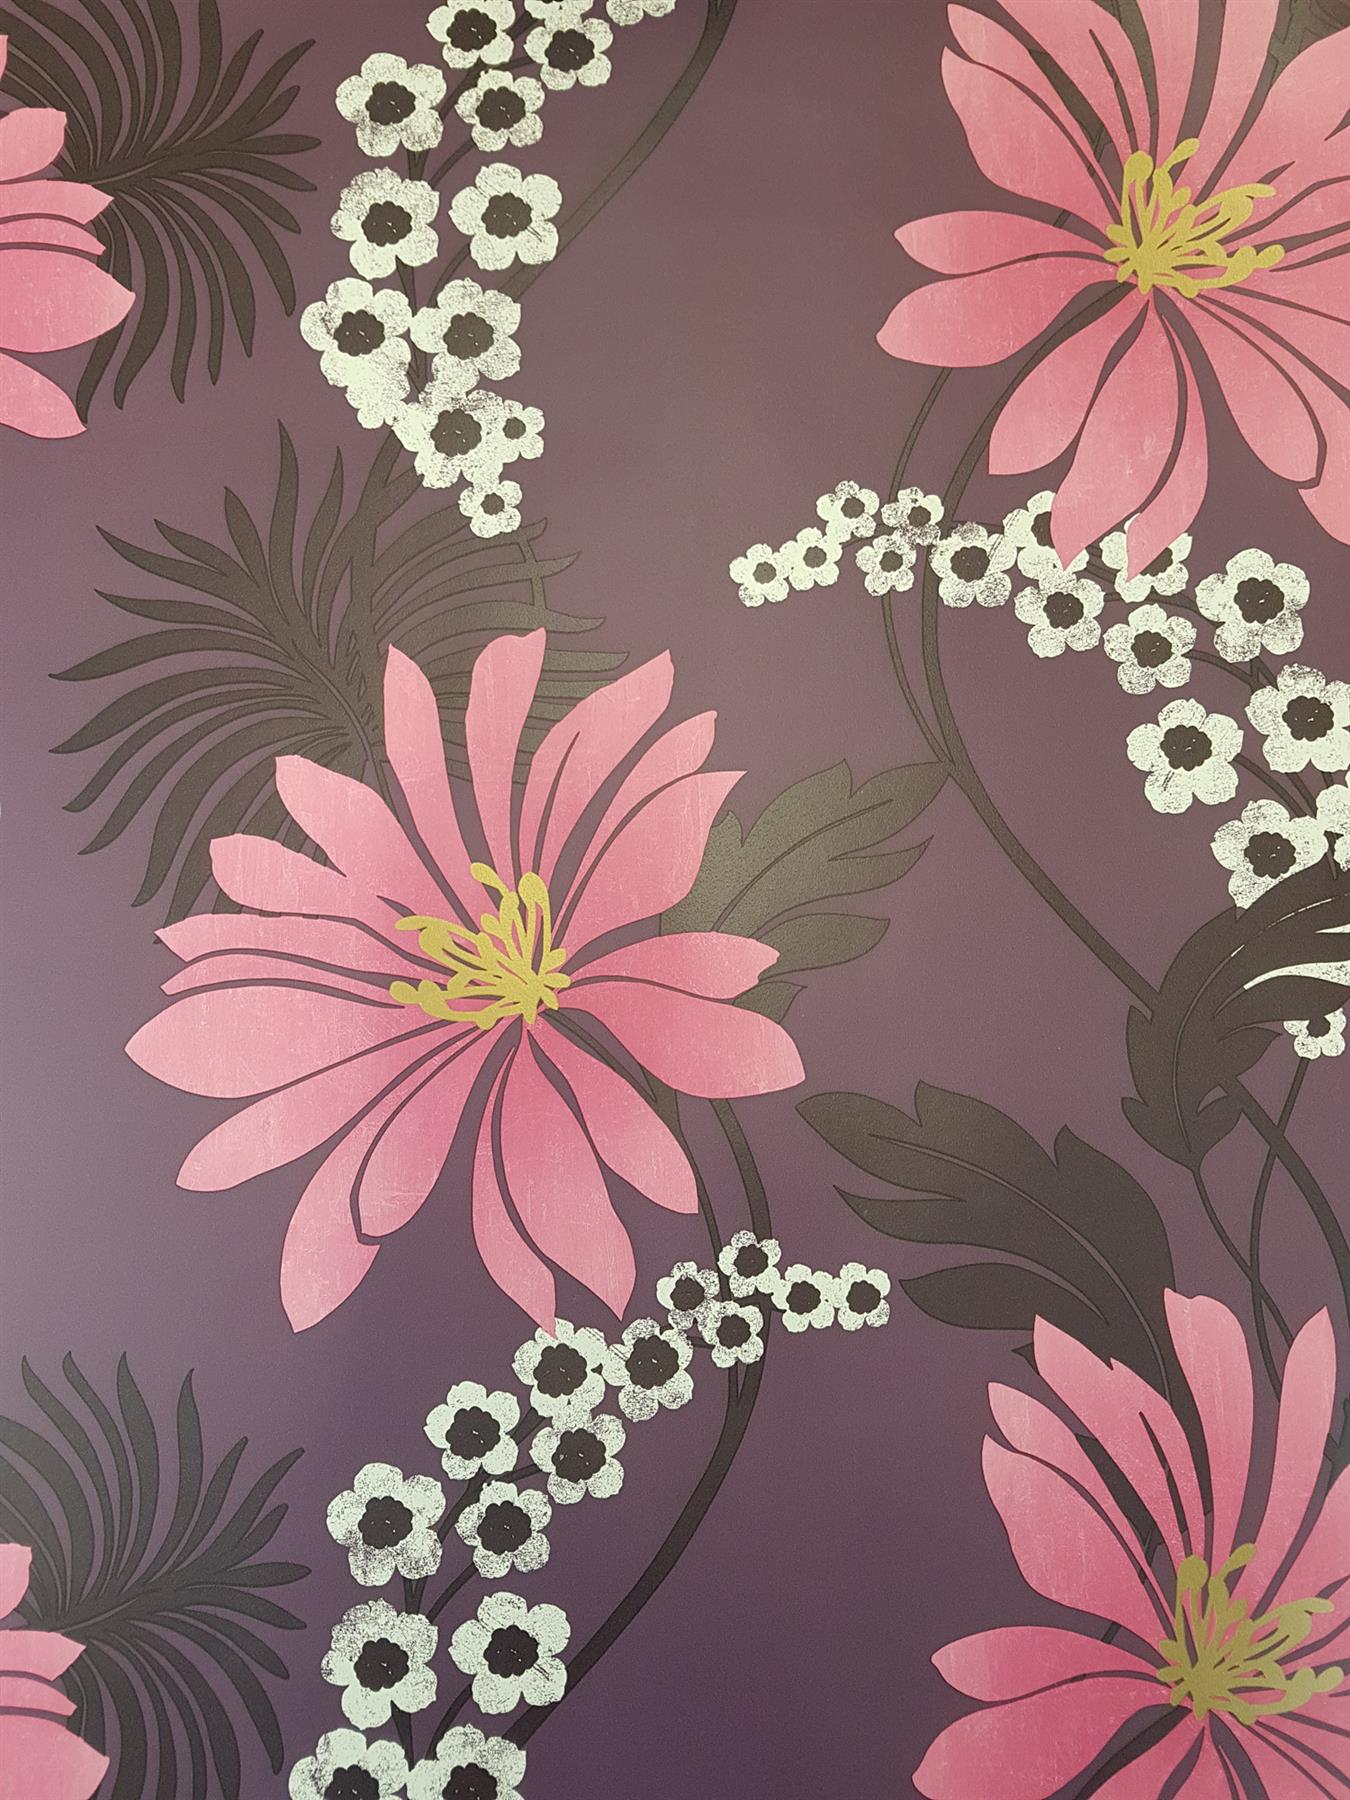 Purple Plum Floral Wallpaper Pink White Flowers Gold Metallic